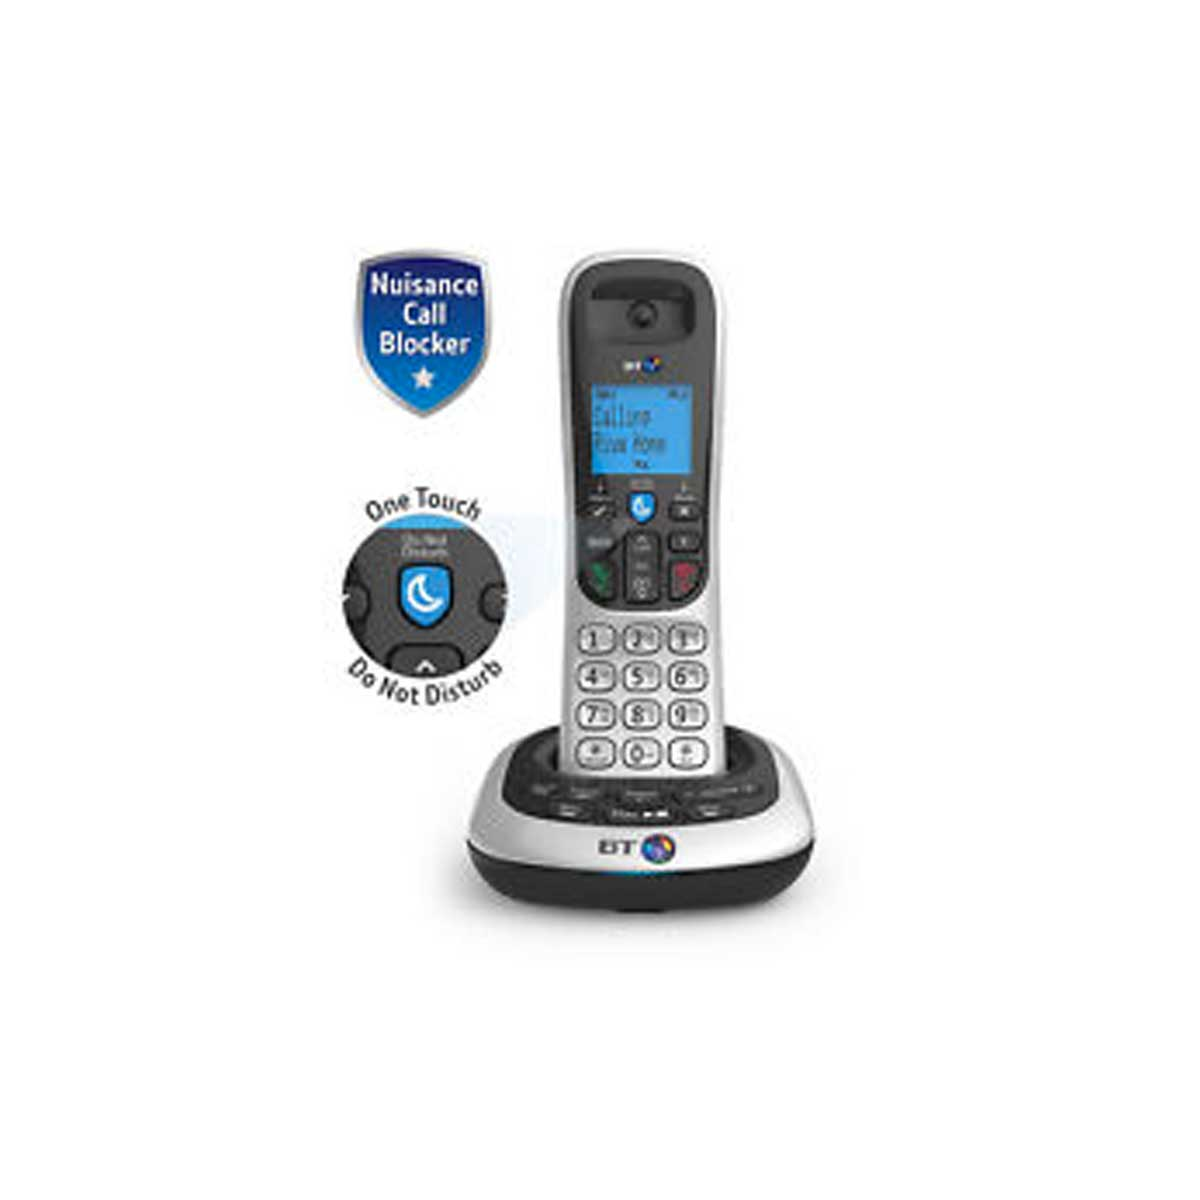 BT BT2700 Dect Telephone with Nuisance Call Blocker and Answer Machine